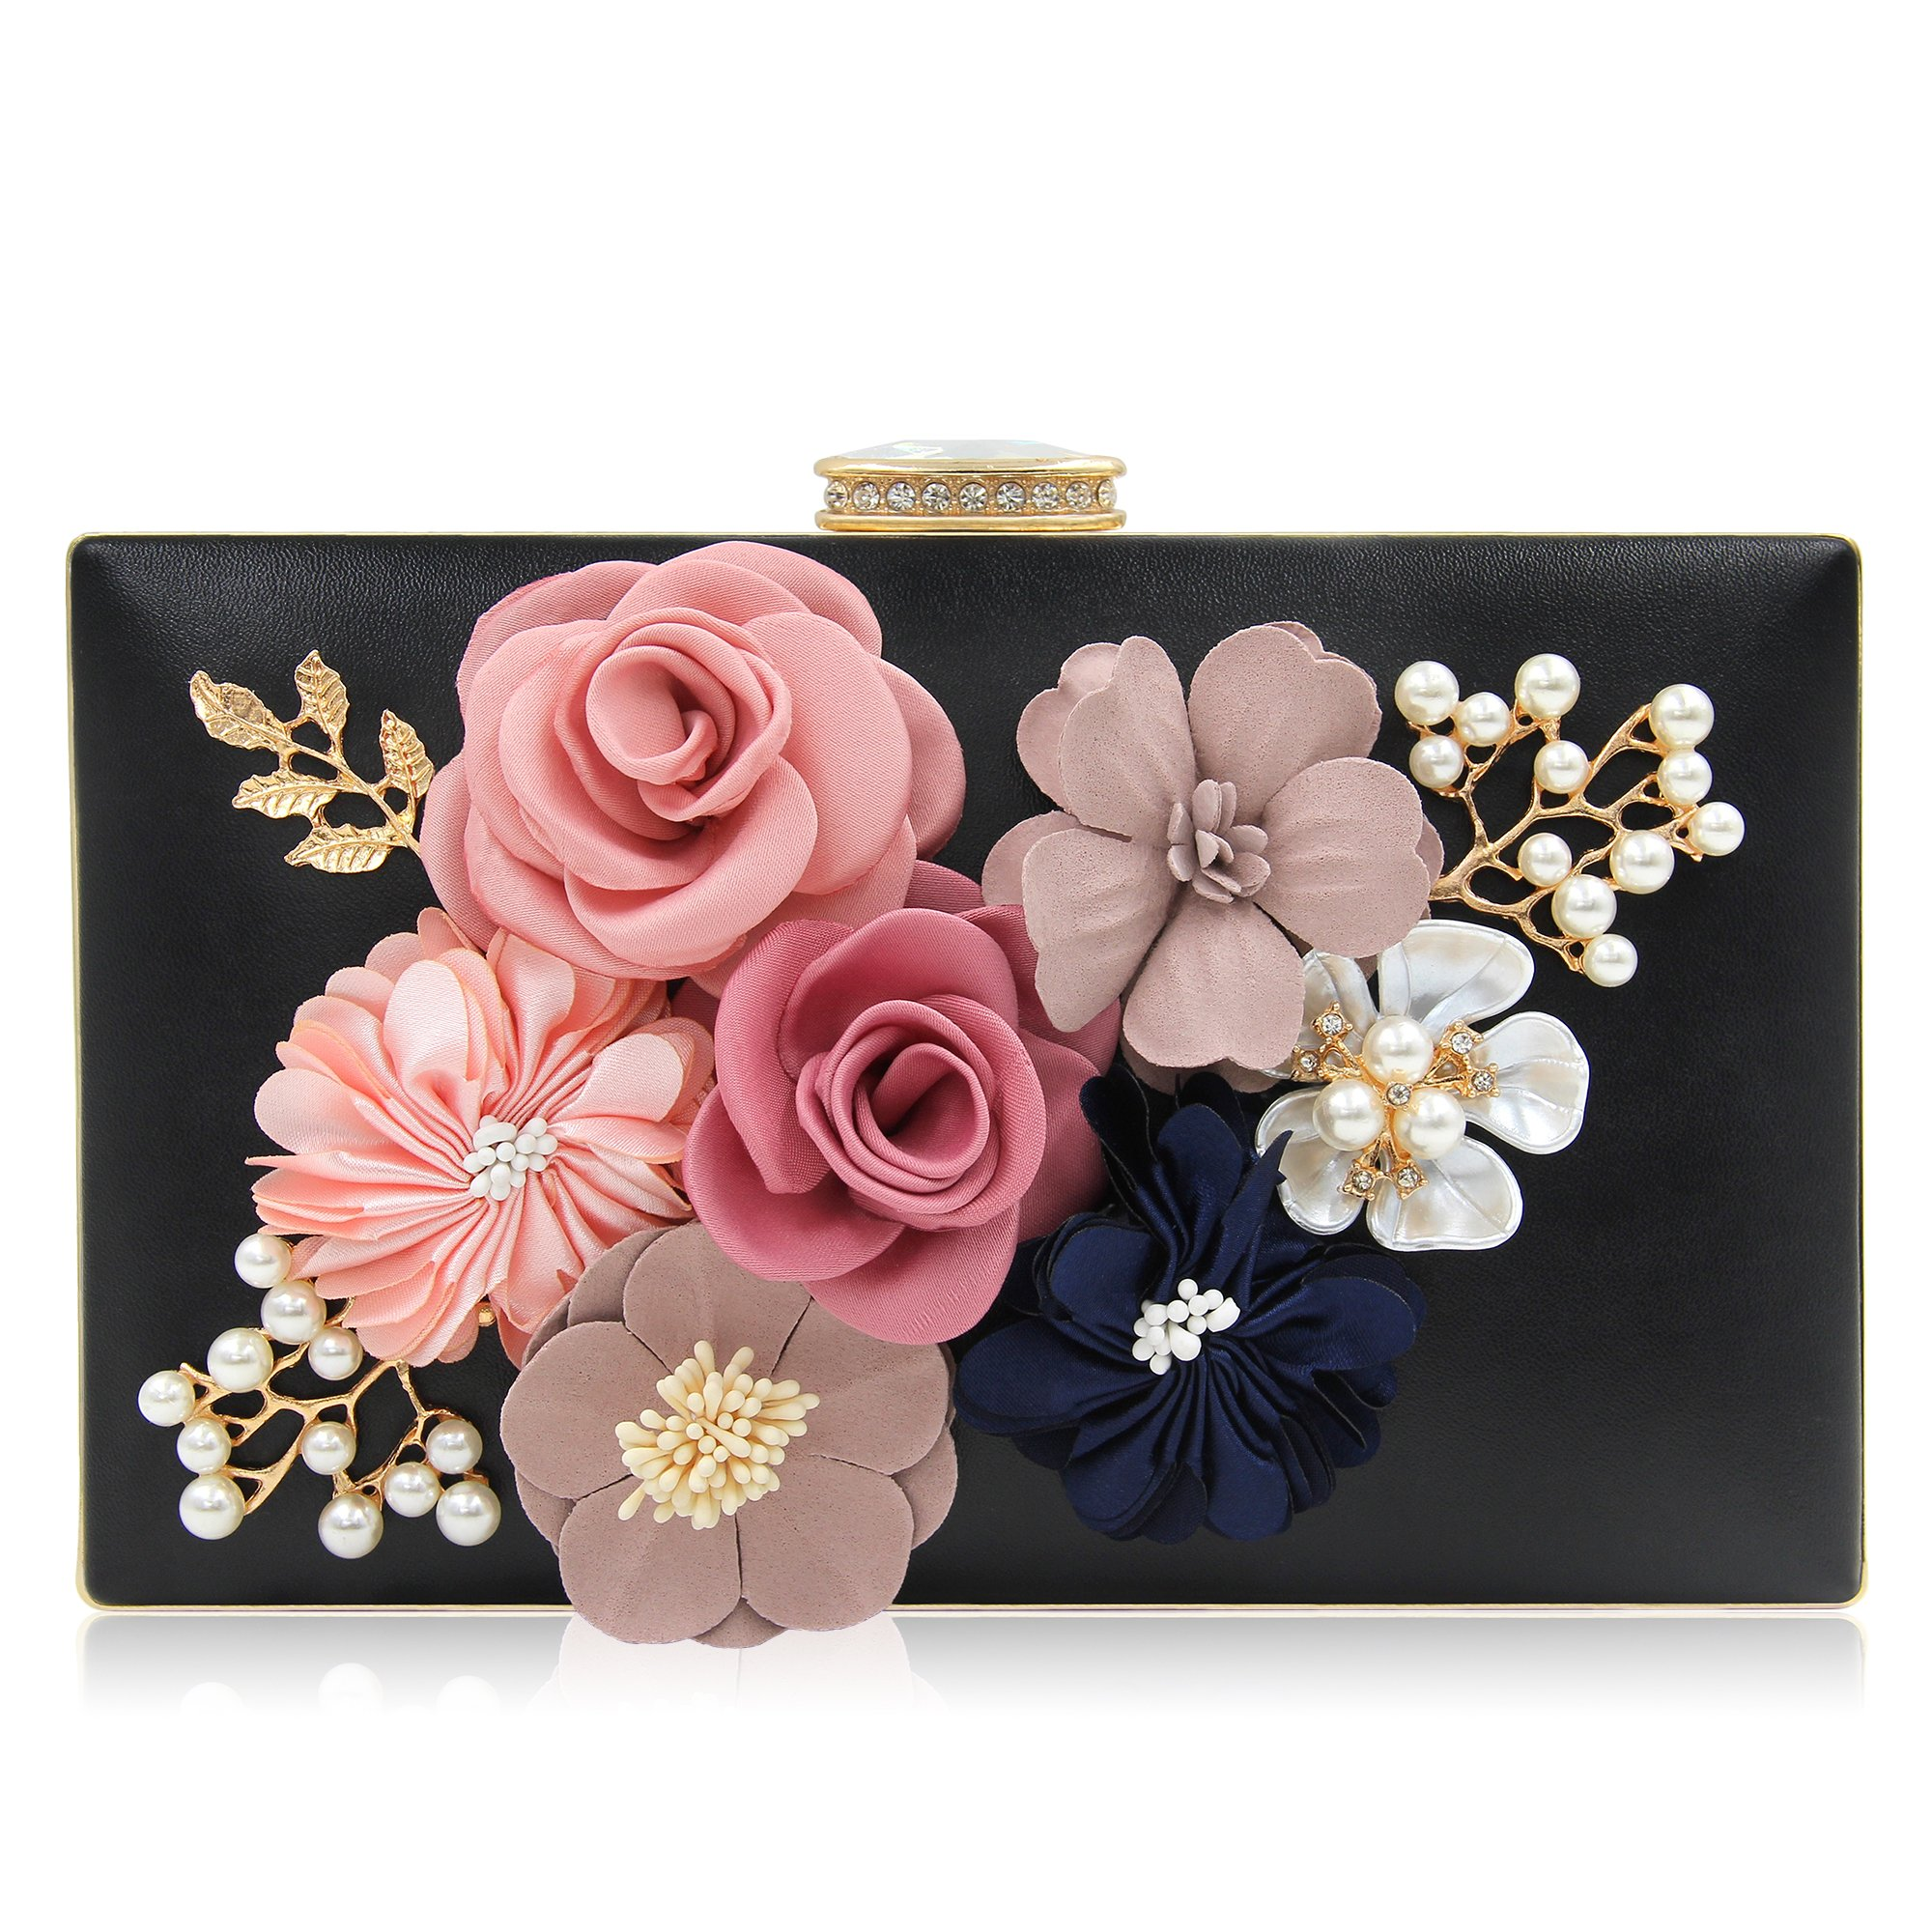 Milisente Women Flower Clutches Evening Bags Handbags Wedding Clutch Purse (Black) by Milisente